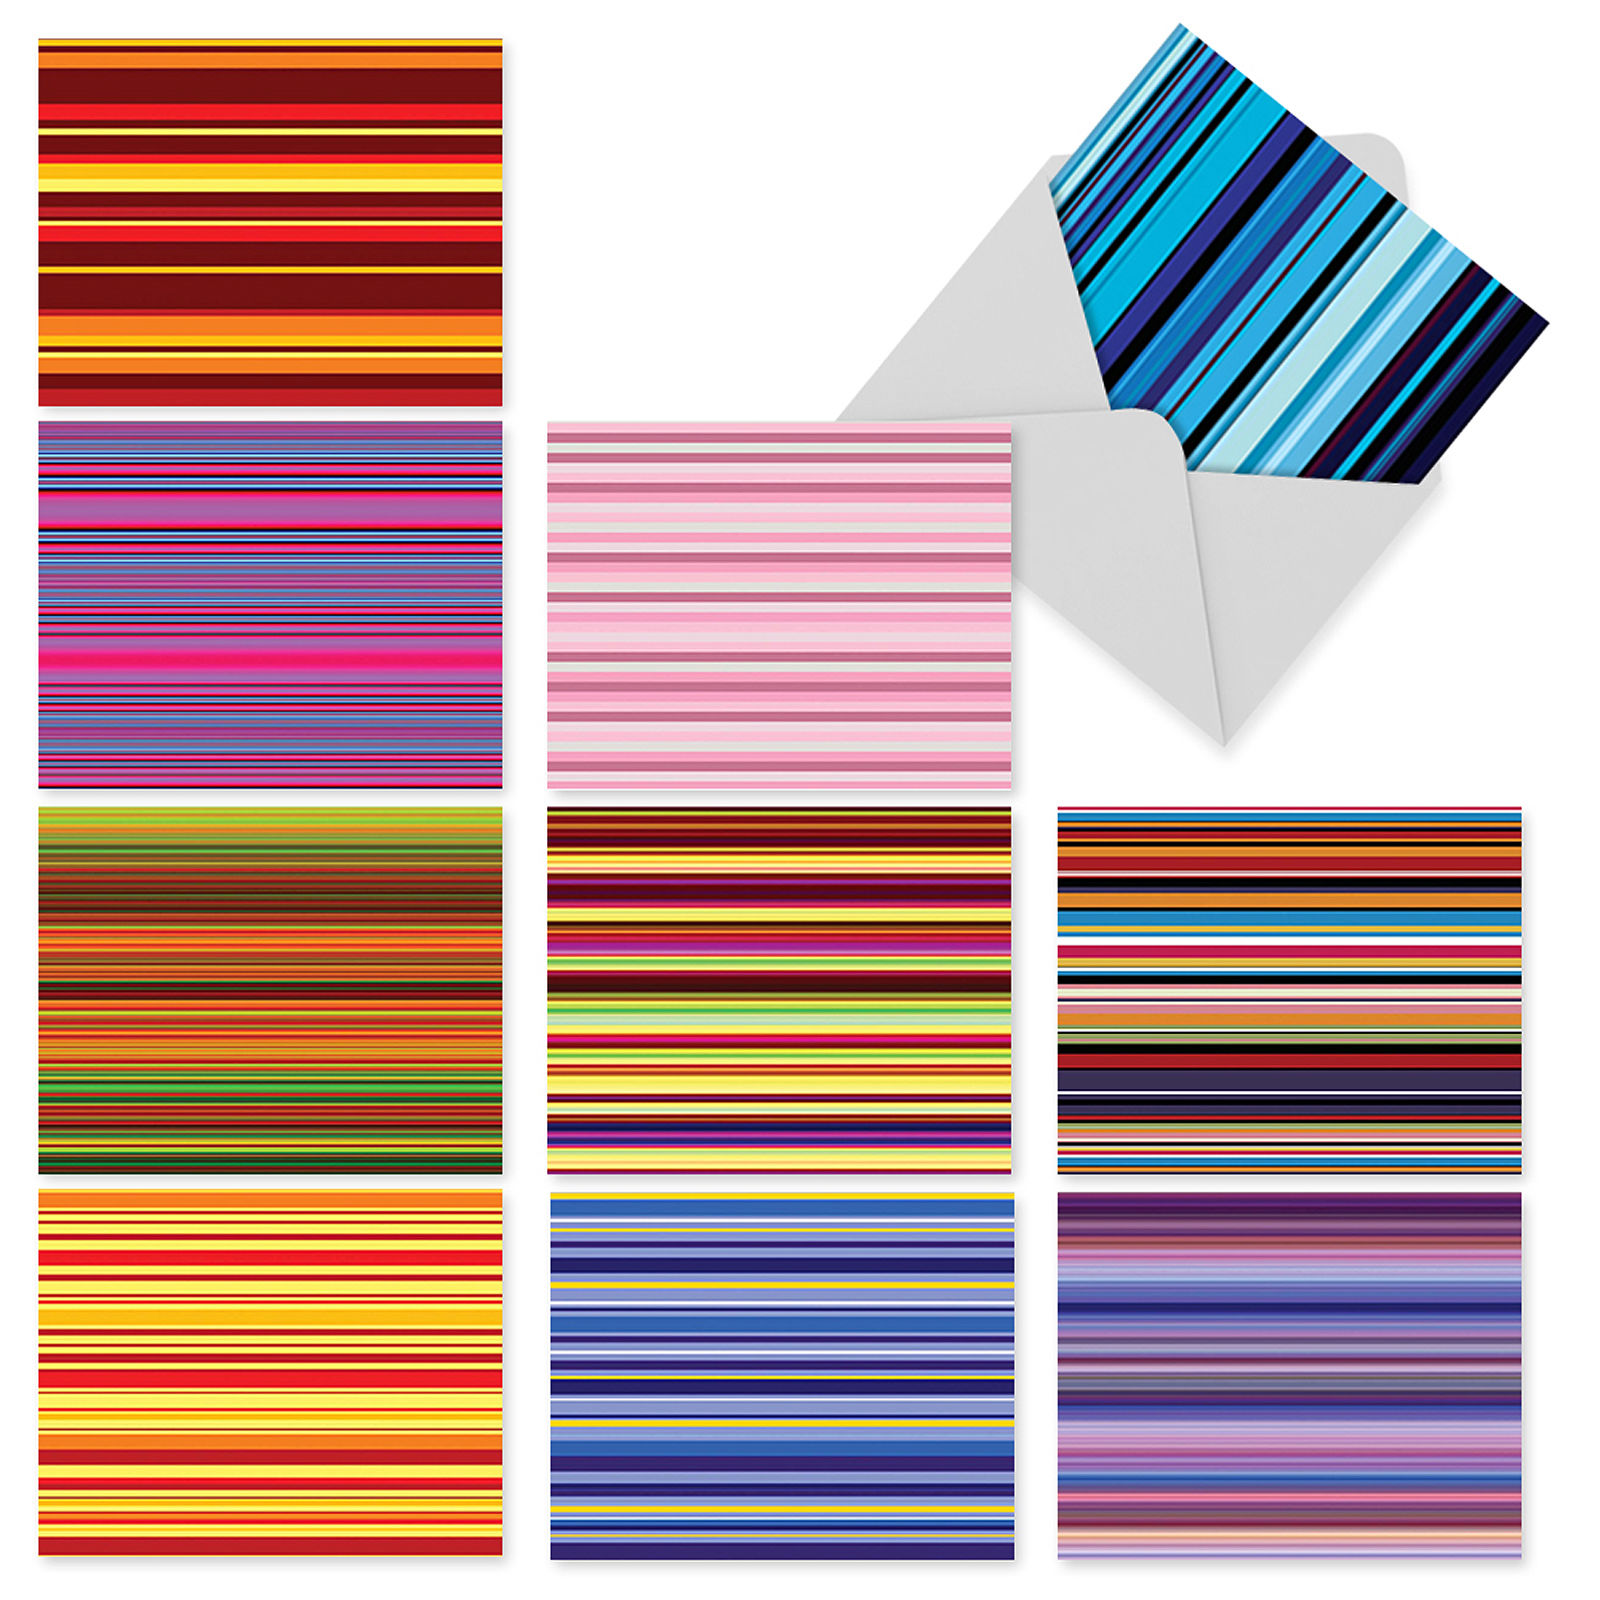 'M2034 M2034 True Stripes' 10 Assorted All Occasions Note Cards Featuring Various Colored Striped Patterns with Envelopes by The Best Card Company